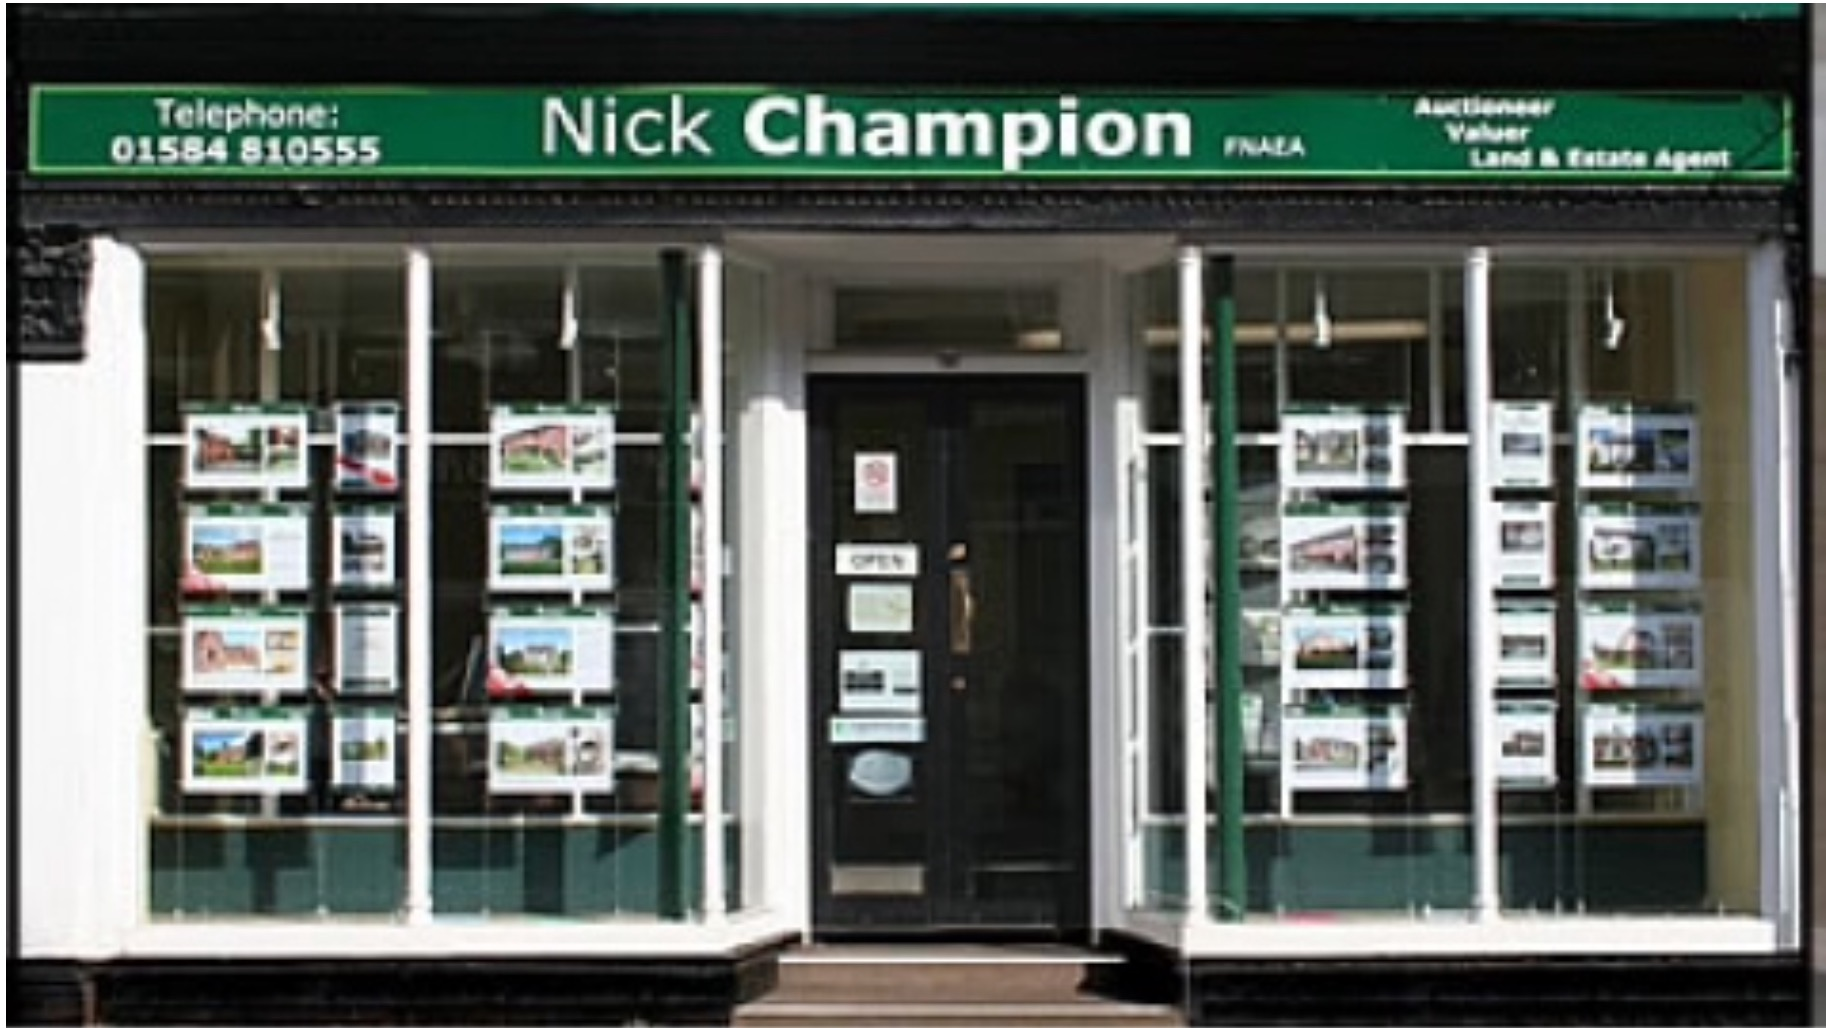 NickChampion